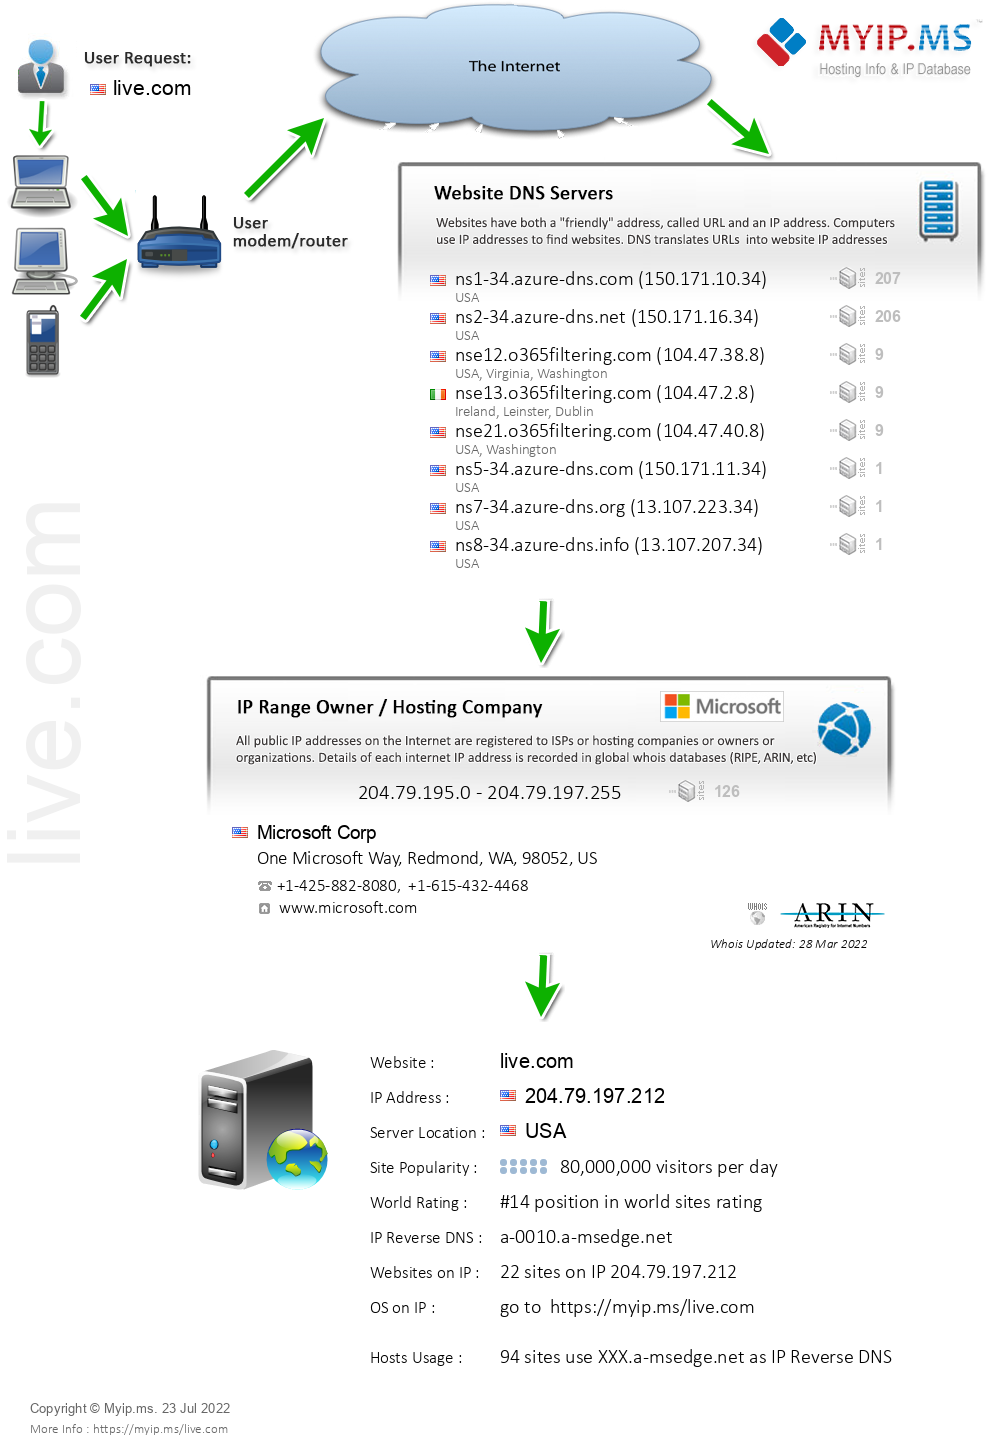 Live.com - Website Hosting Visual IP Diagram